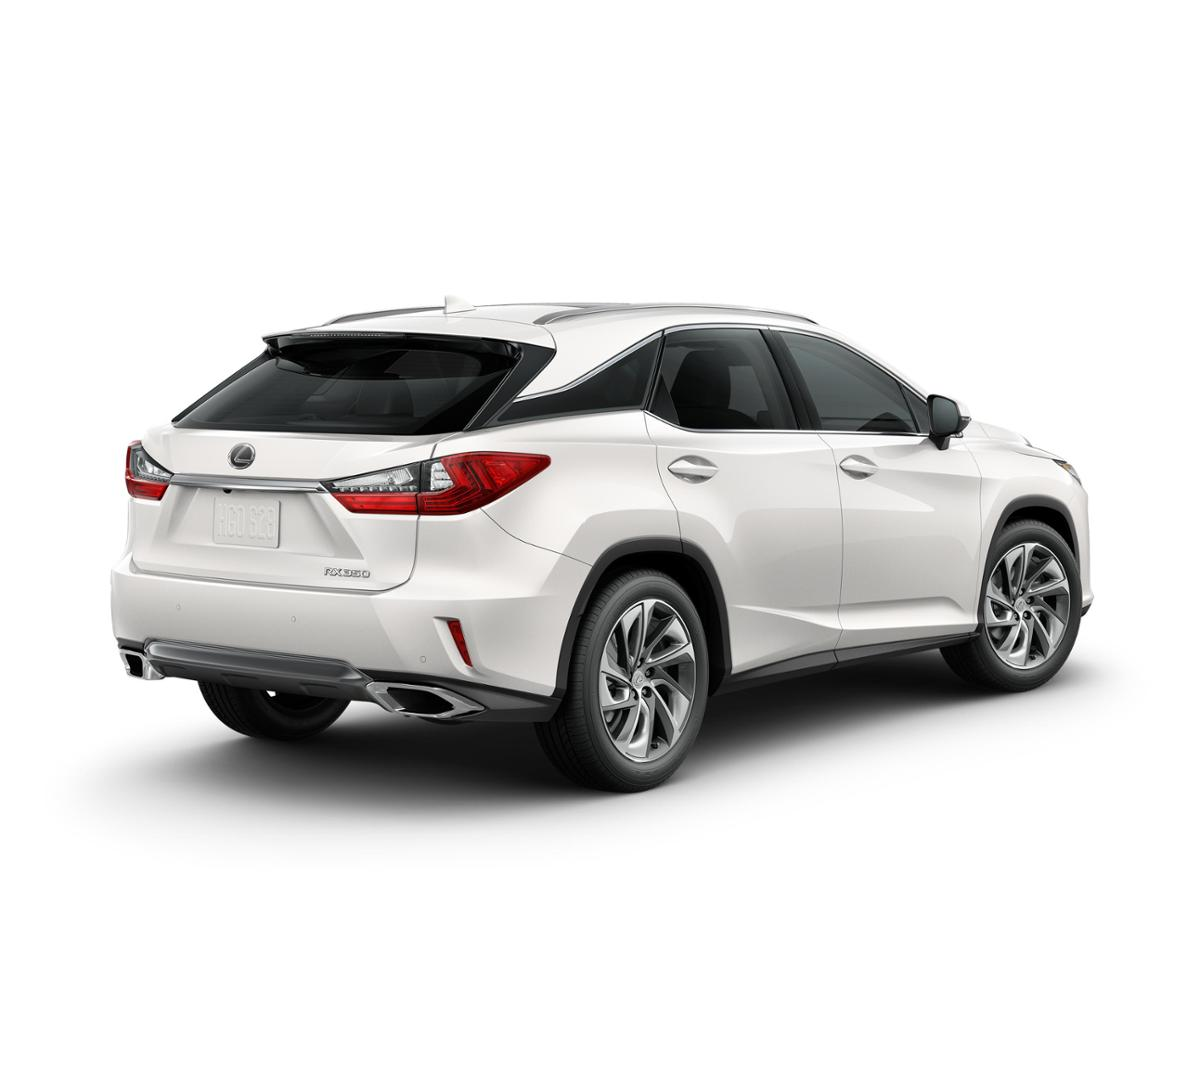 Lexus Rx 350 Lease: East Haven Lexus RX 350 2019 Eminent White Pearl: New Suv